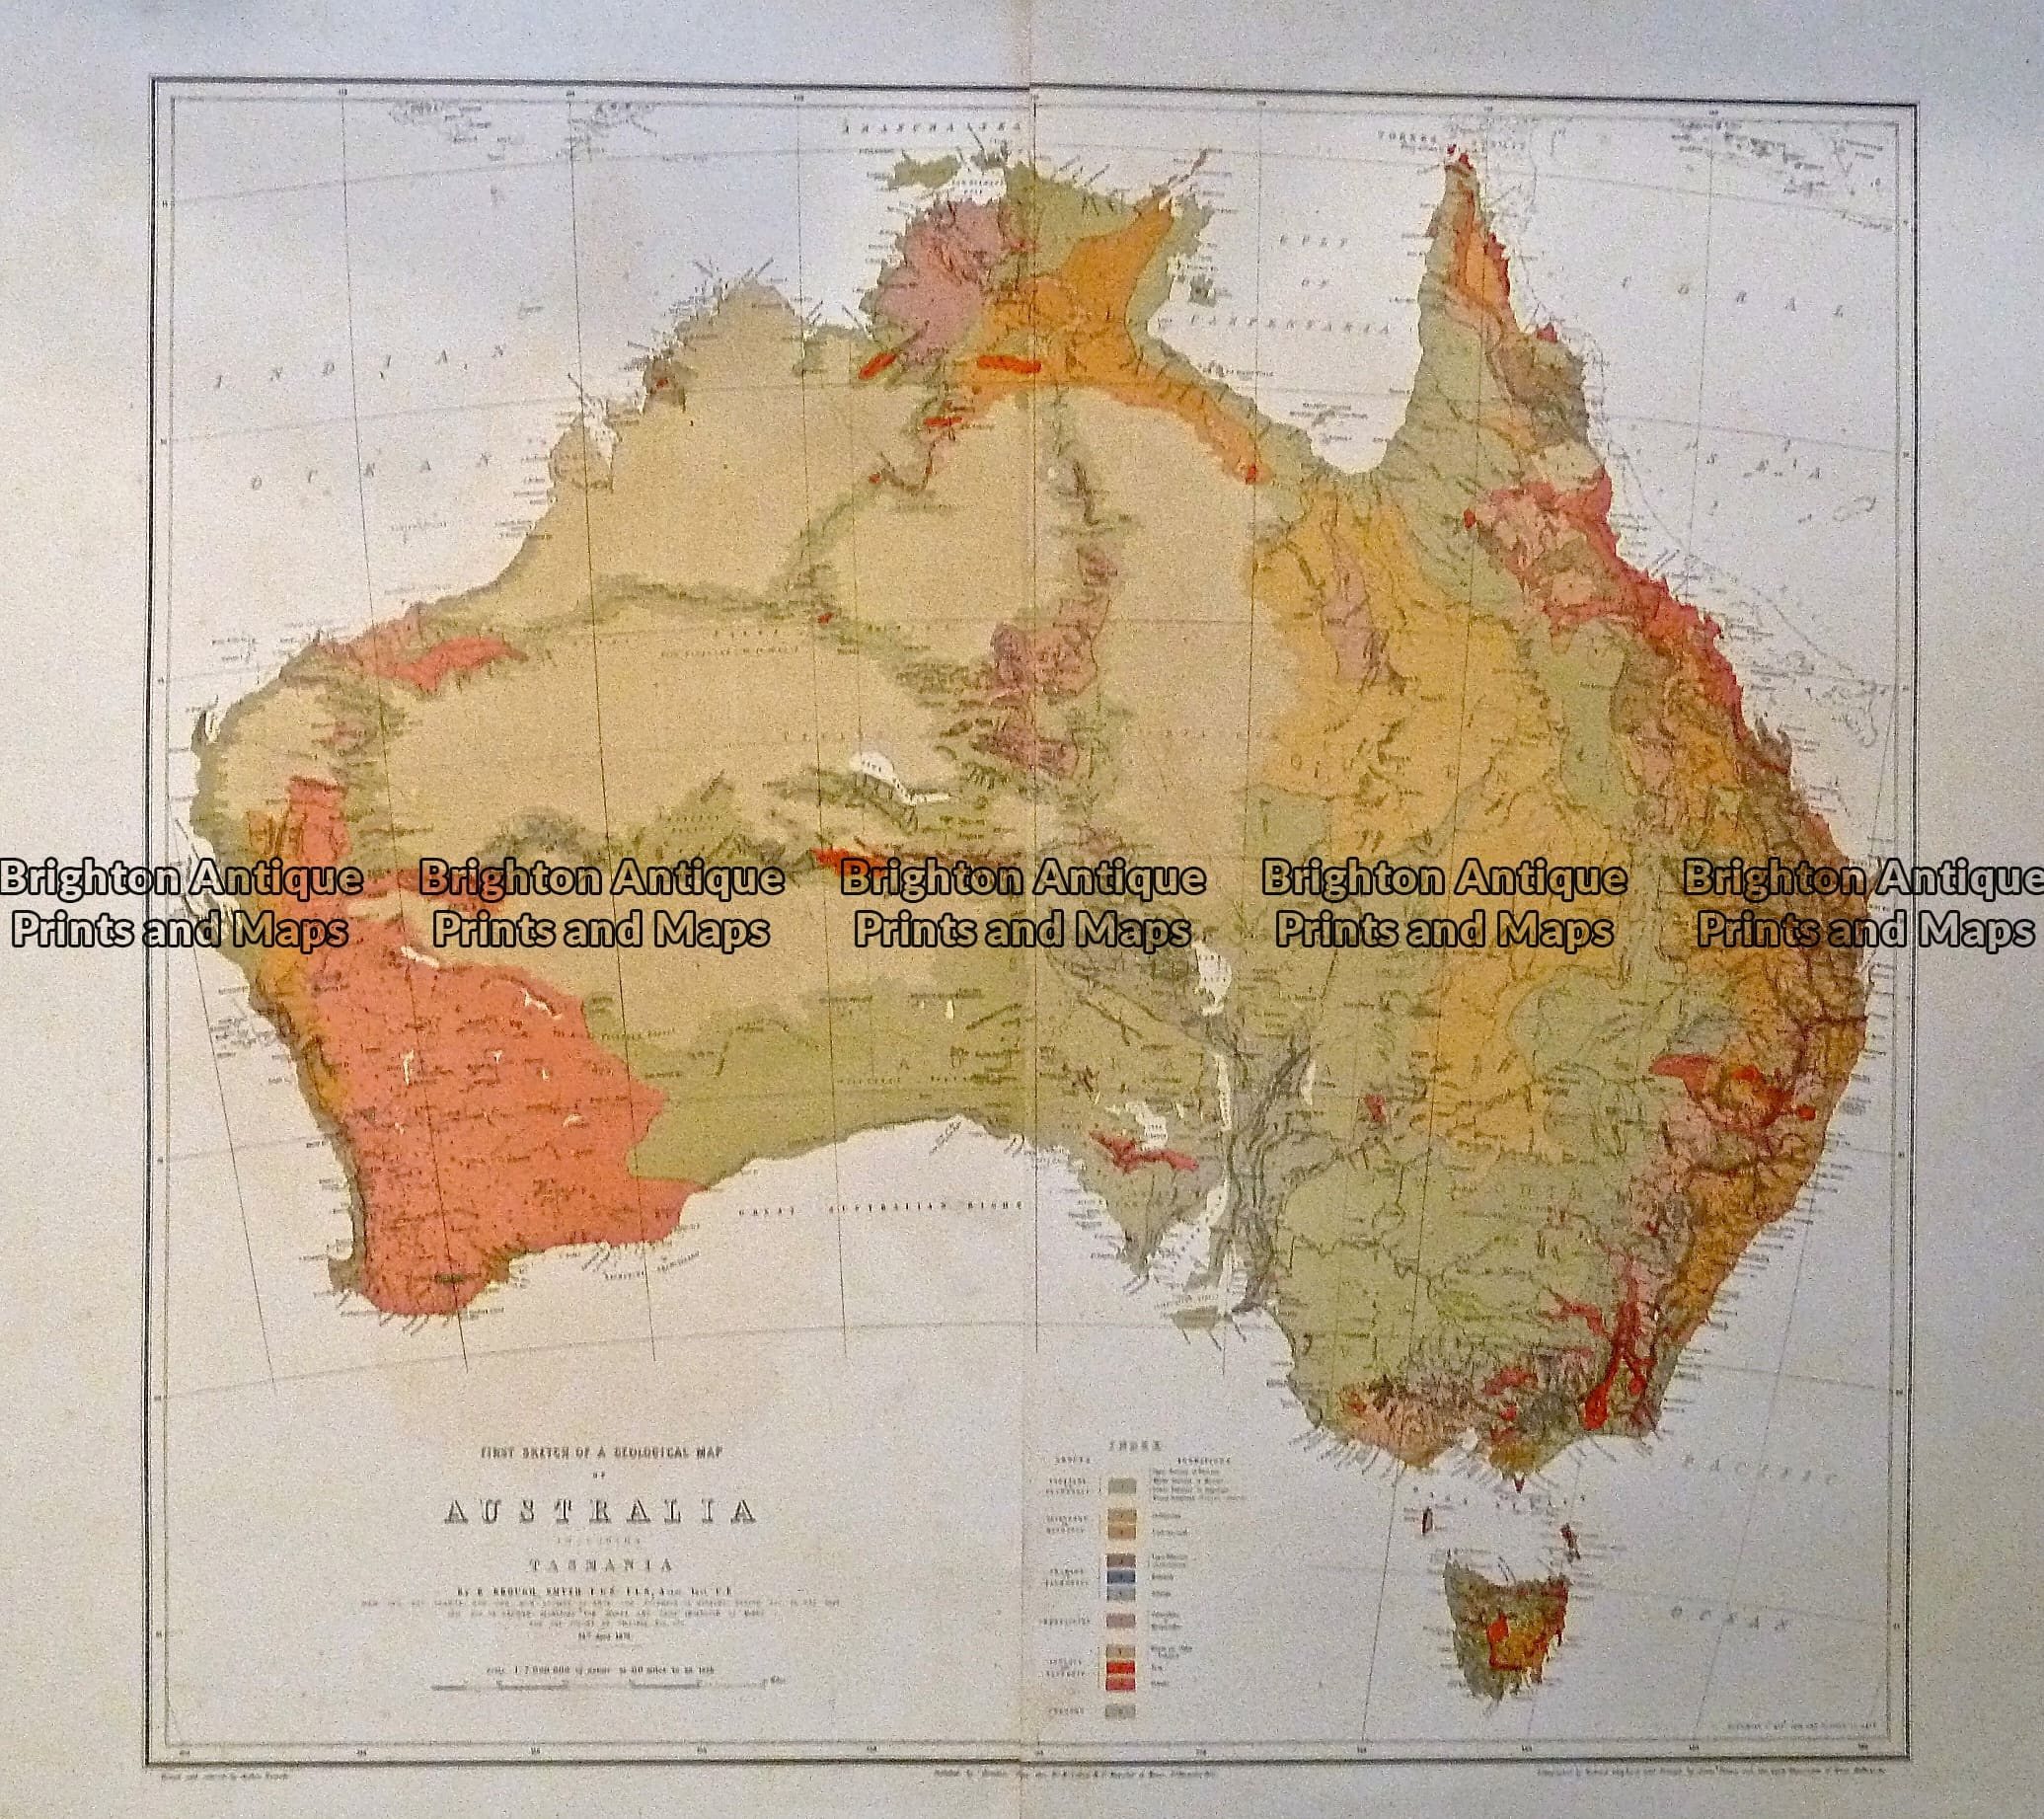 Map Of Australia To Buy.Antique Map 236 015 Geological Map Of Australia Brighton Antique